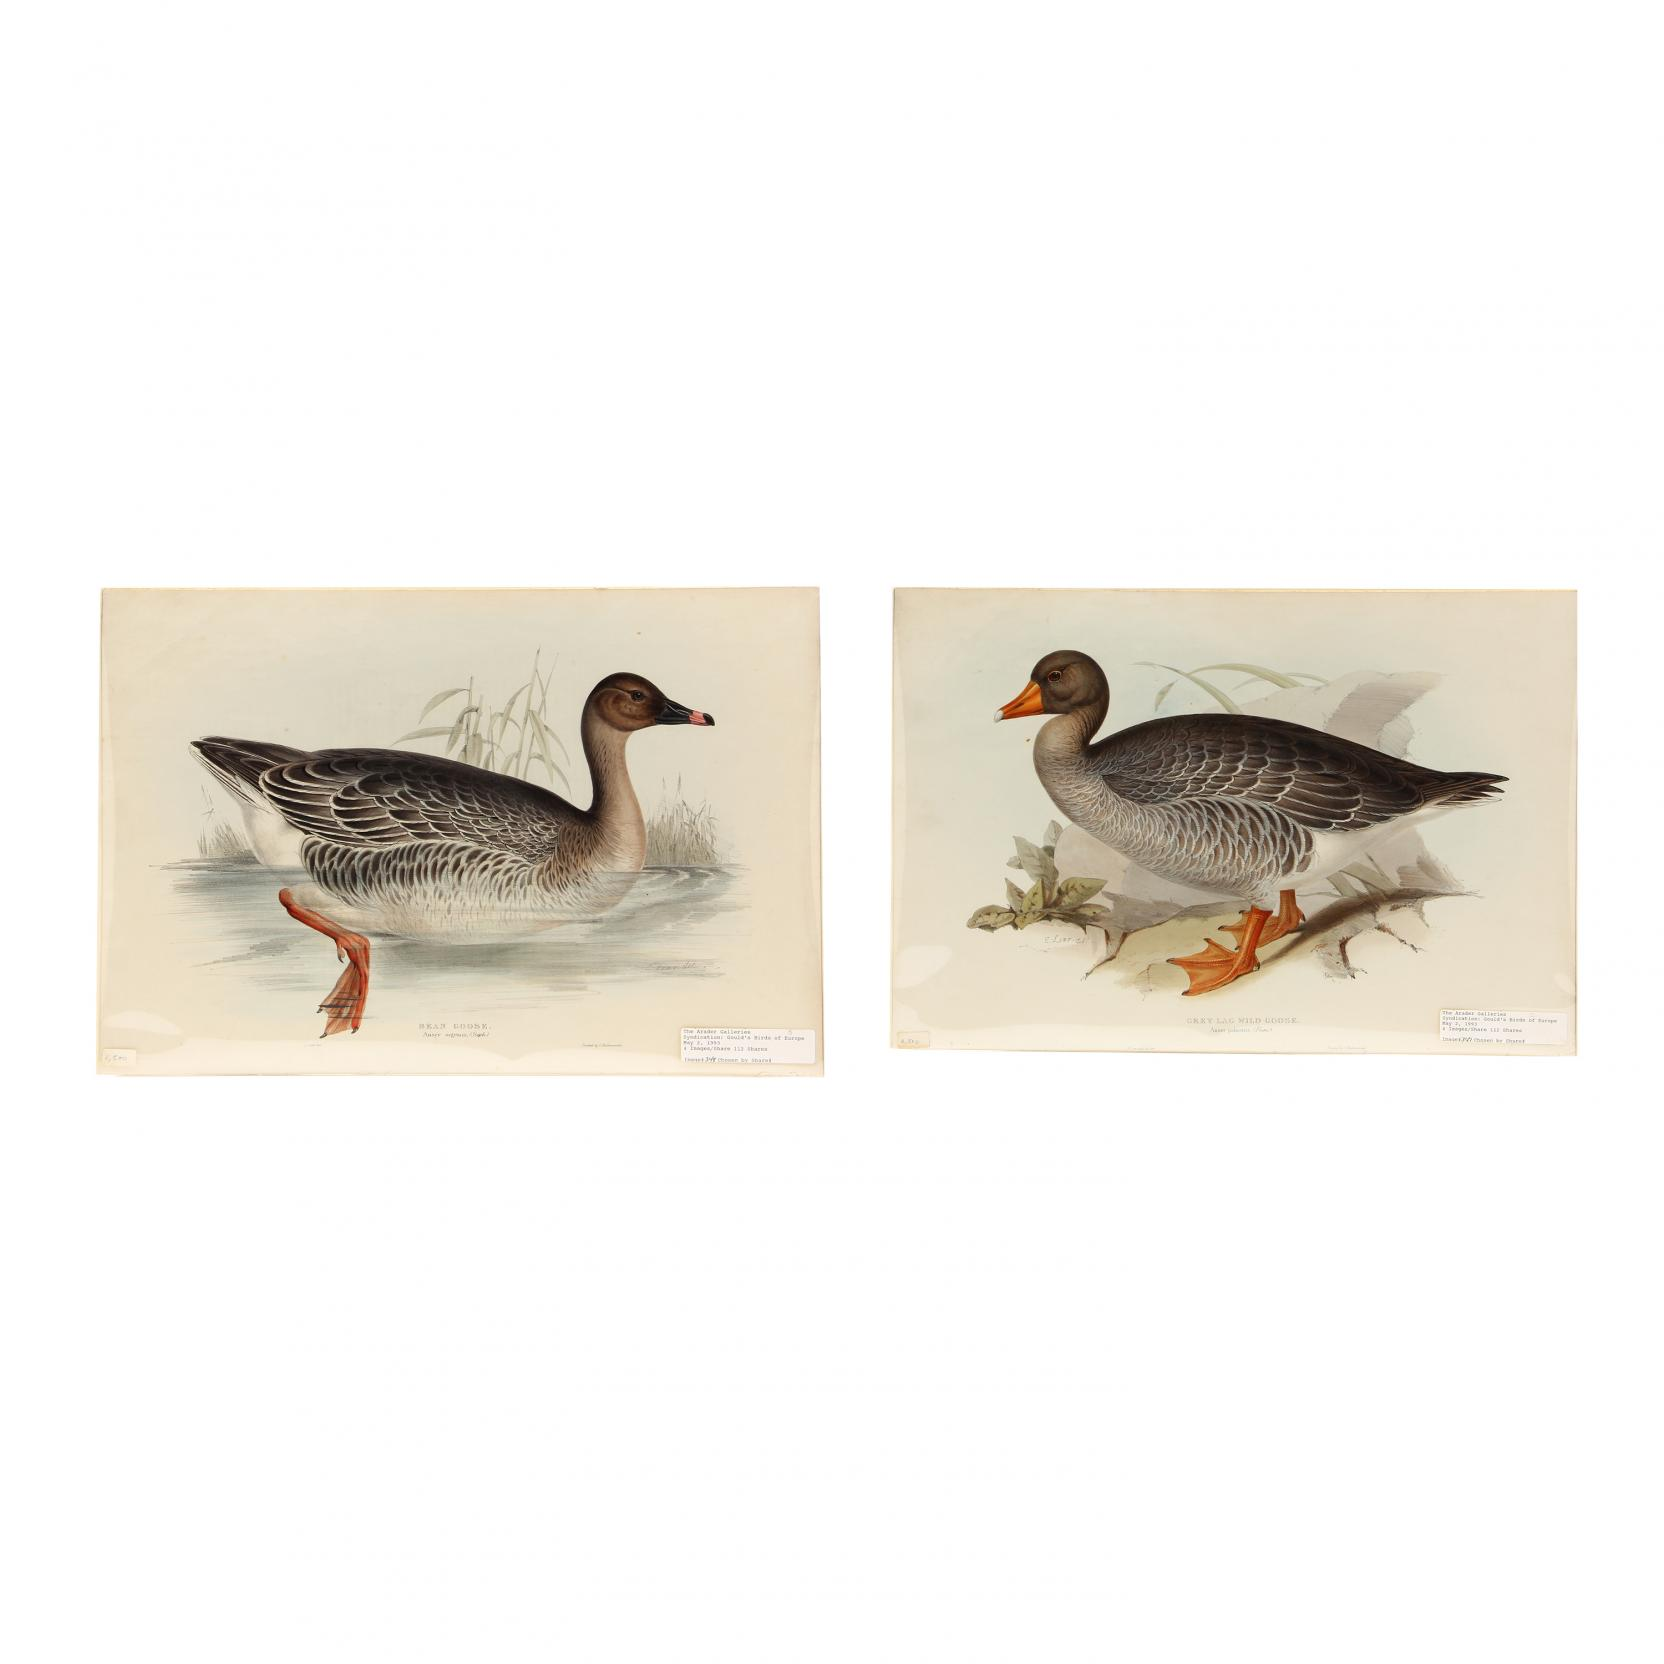 edward-lear-british-1812-1888-pair-of-goose-prints-from-john-gould-s-i-the-birds-of-europe-i